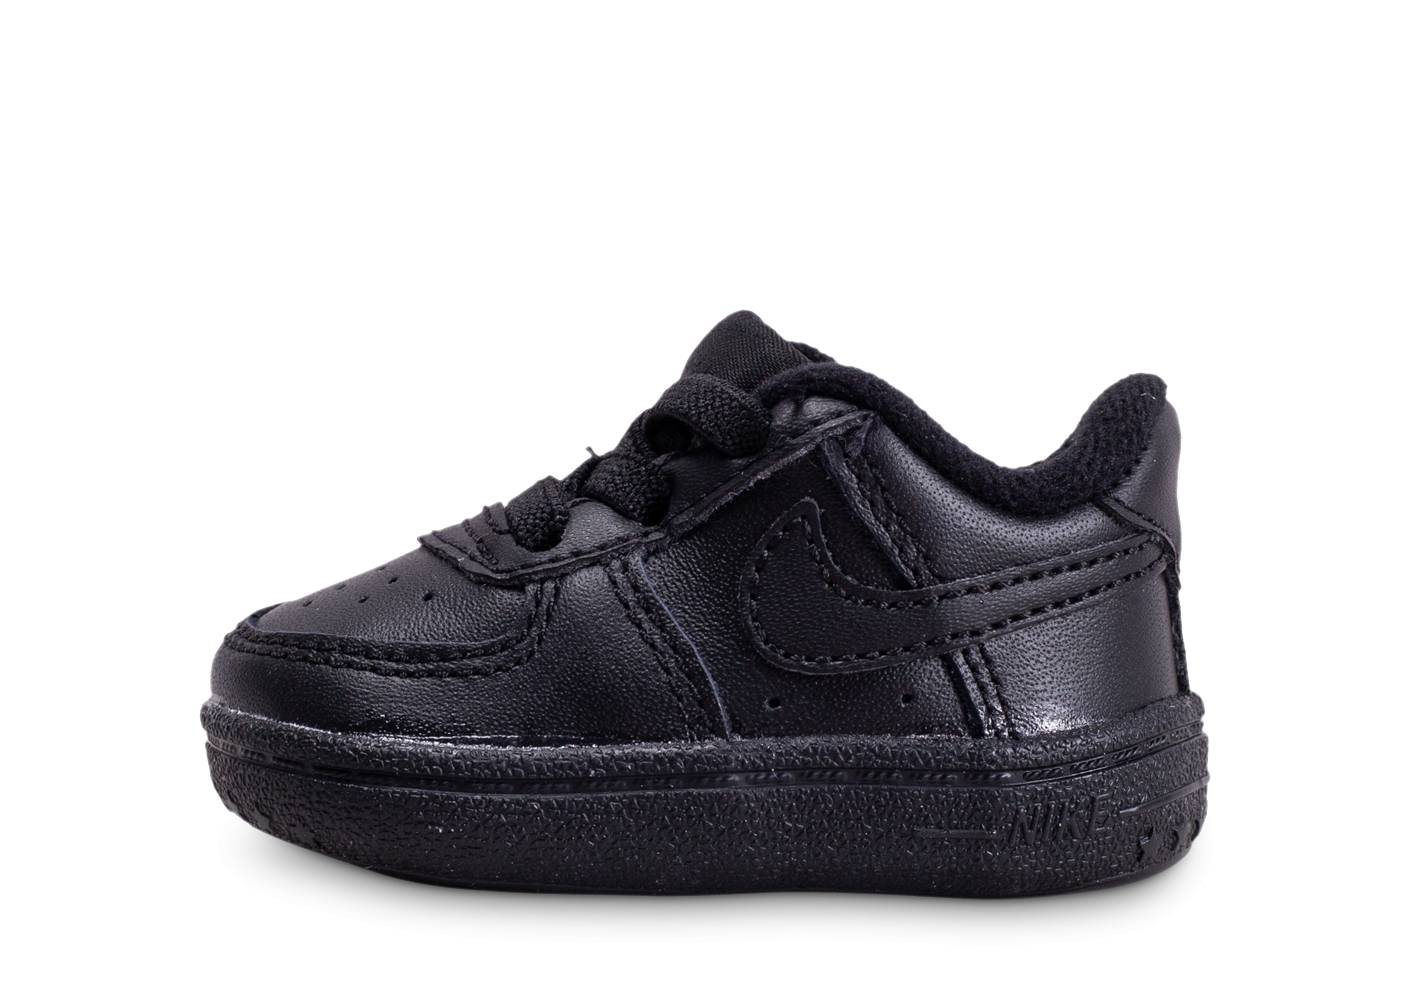 Nike Bébé Air Force 1 Noire Crib Baskets 16